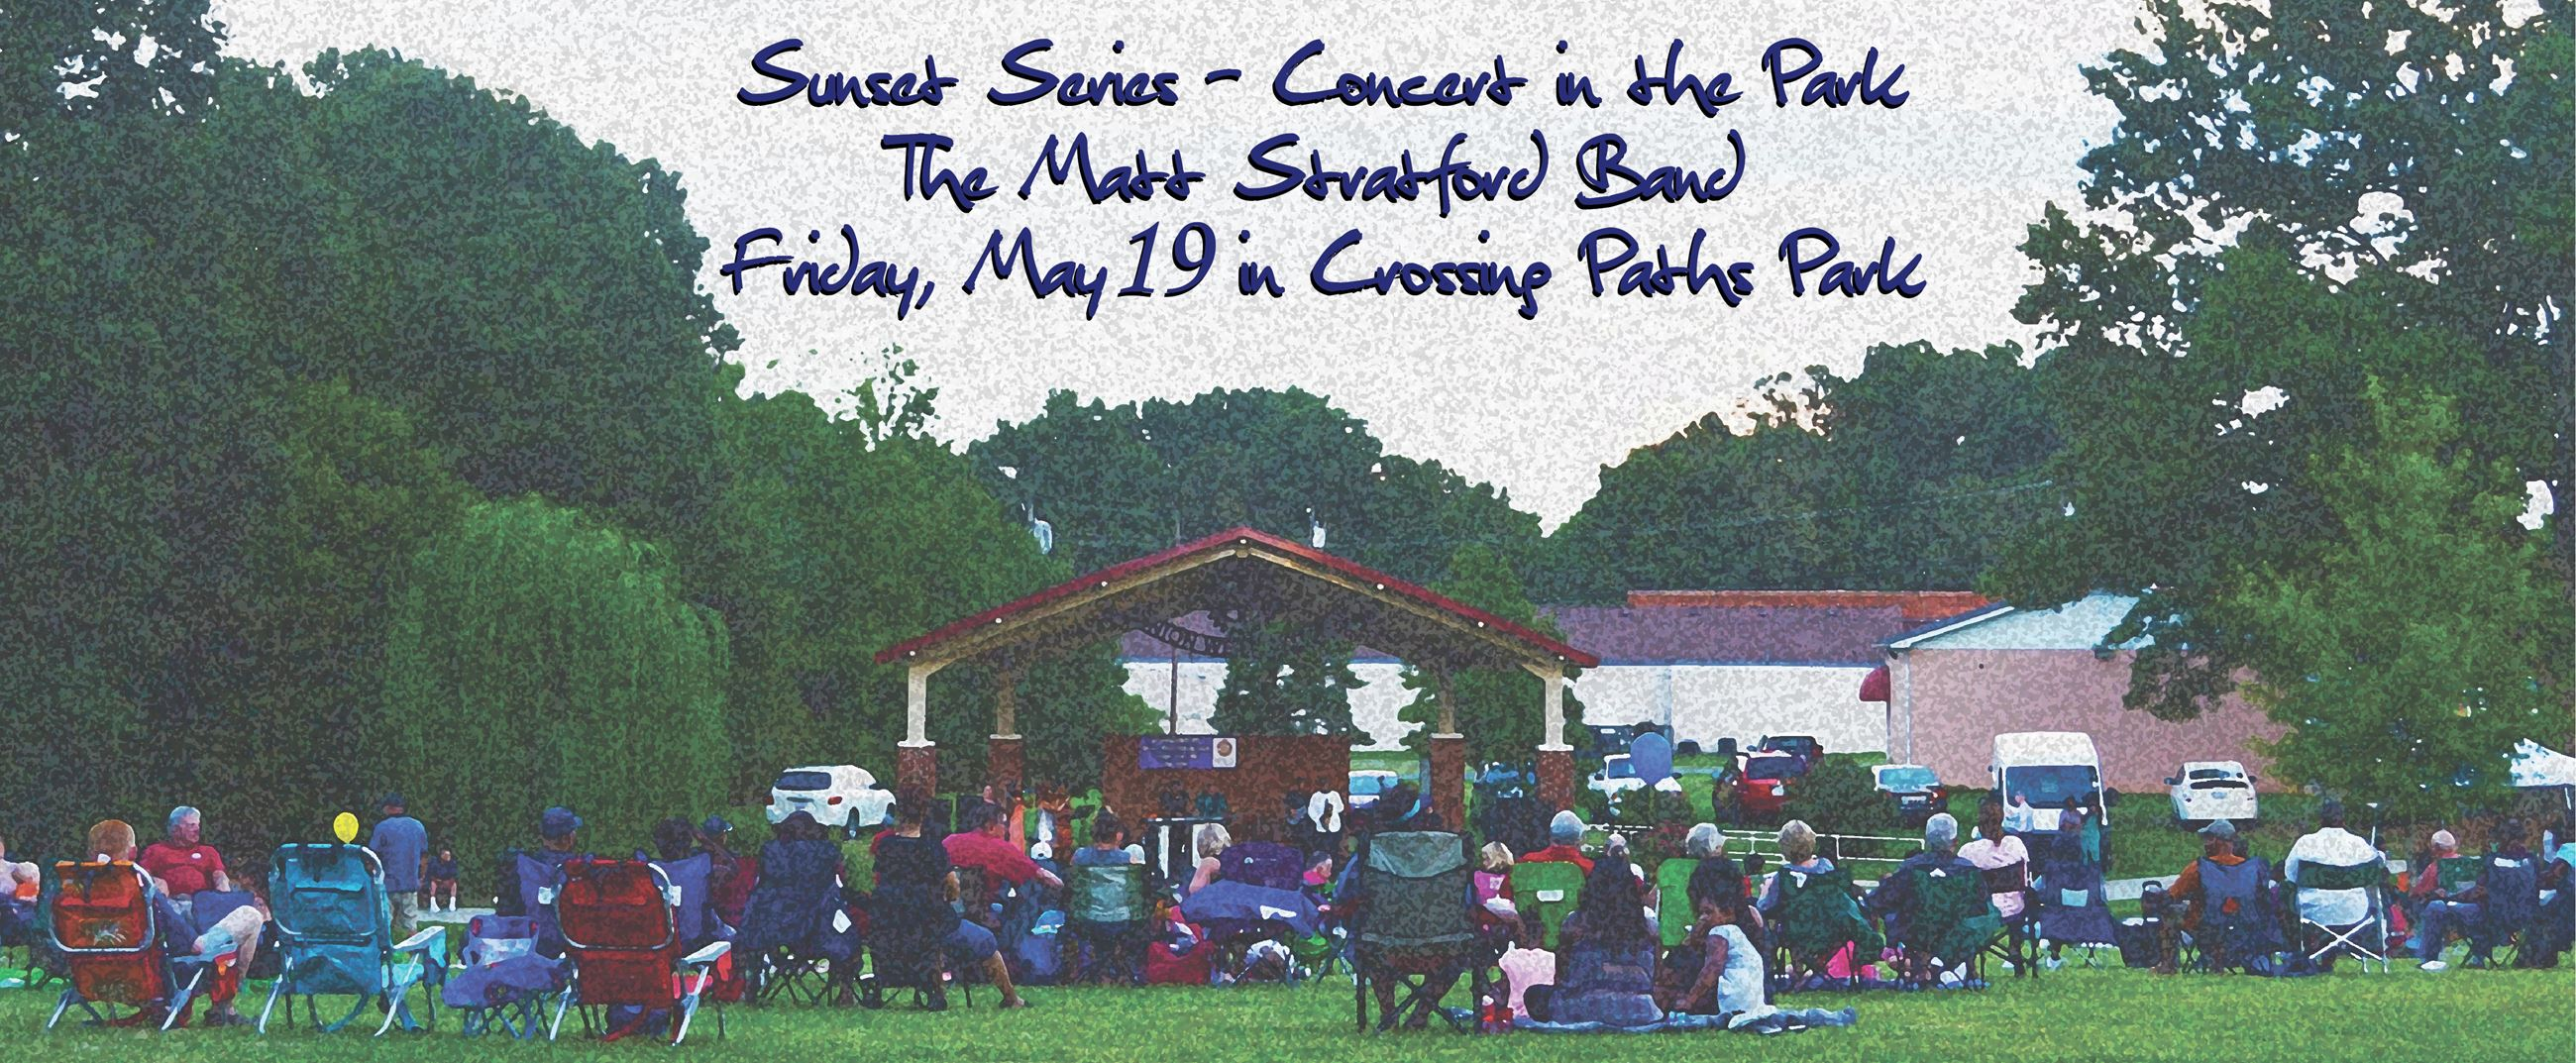 Sunset Series Concert on May 19